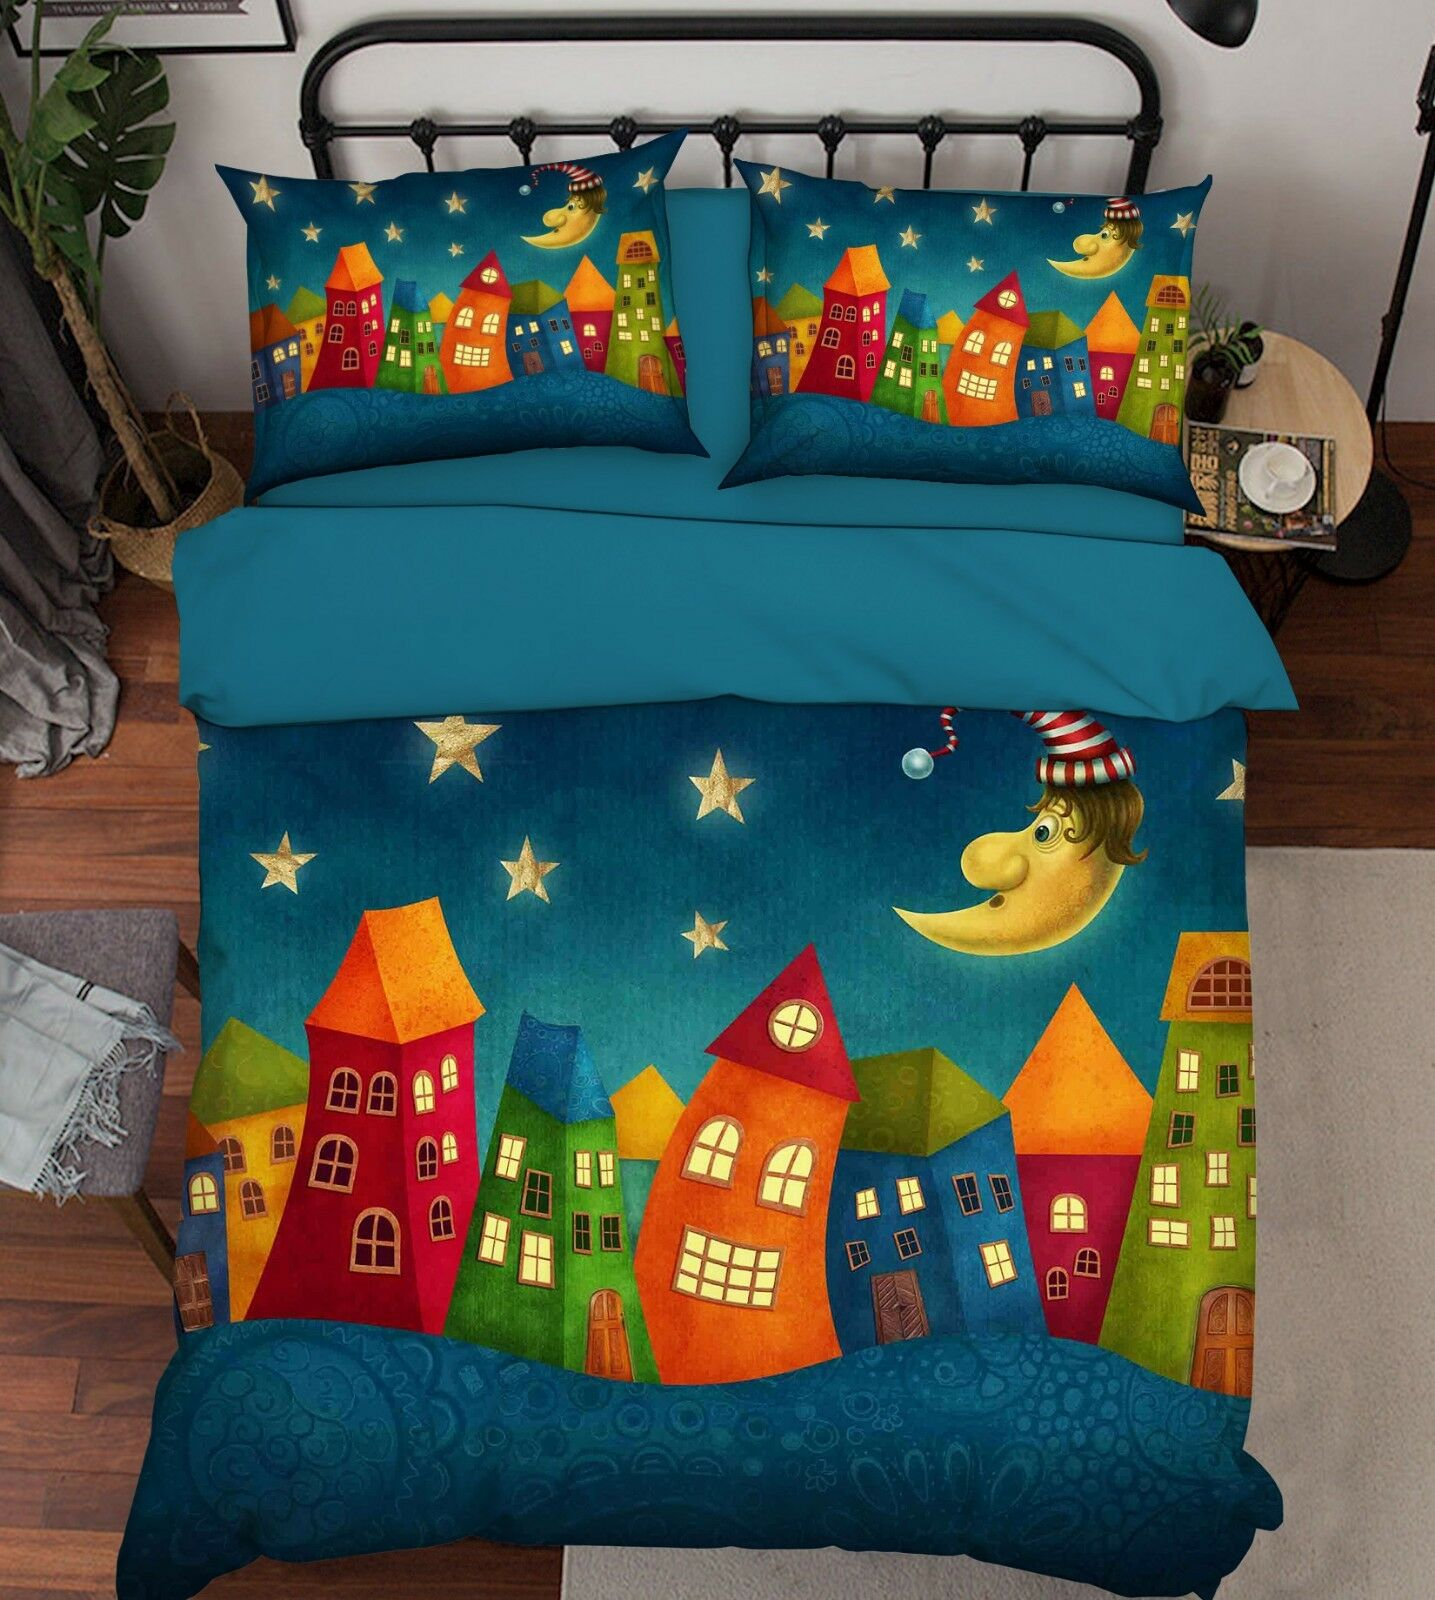 3D Star House 688 Bed Pillowcases Quilt Duvet Cover Set Single Queen AU Carly